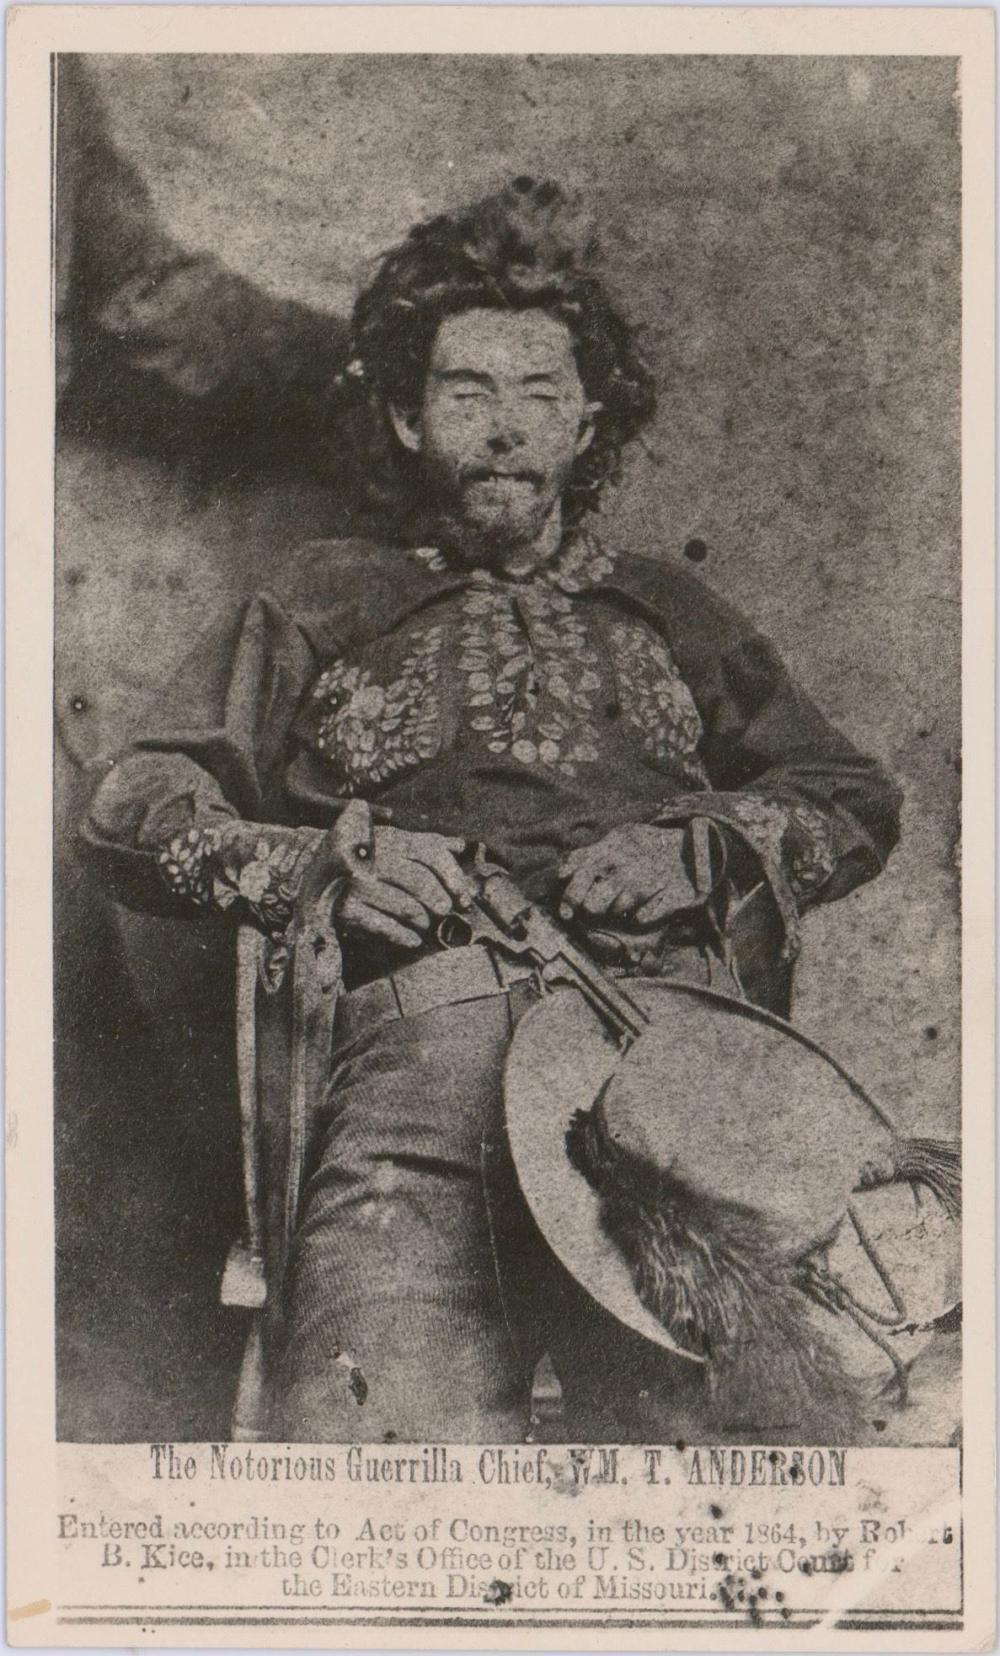 """Vintage Photo of """"Bloody Bill"""" Anderson After Being Killed By Union Solders, Owned by the Photographer"""